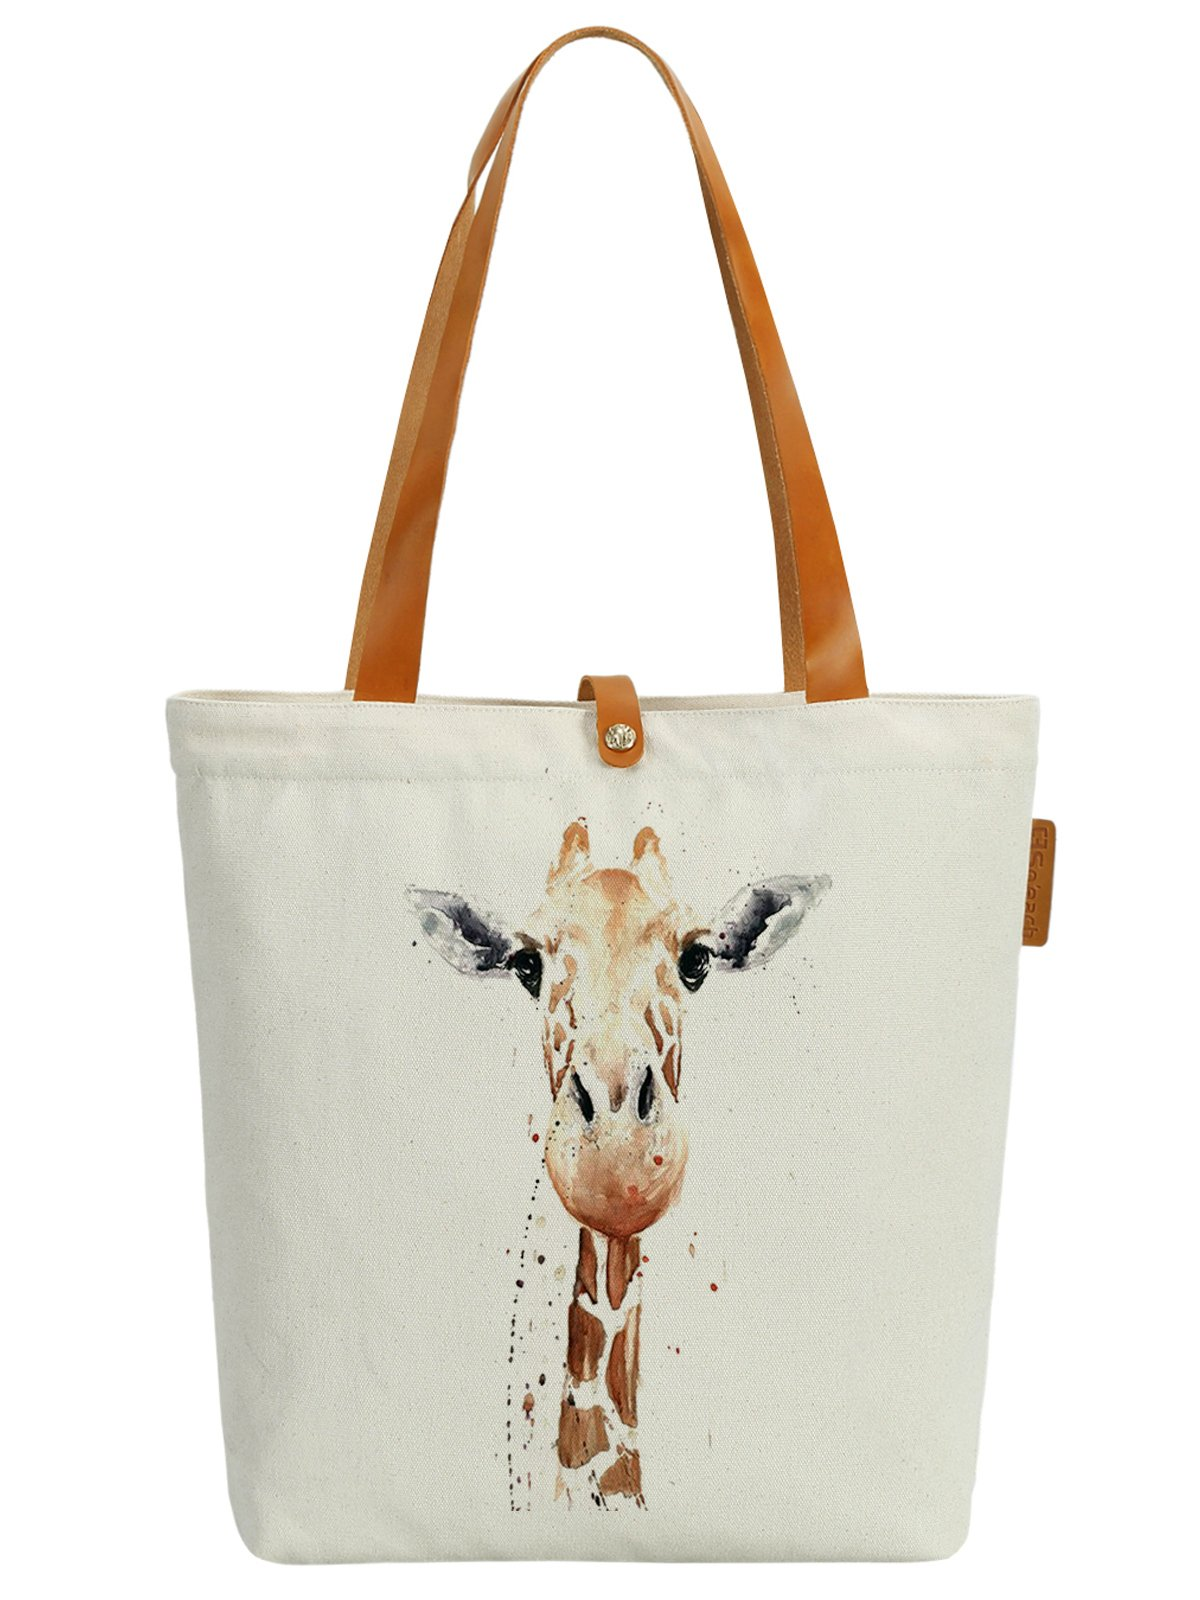 So'each Women's Animal Giraffe Art Graphic Top Handle Canvas Tote Shoulder Bag